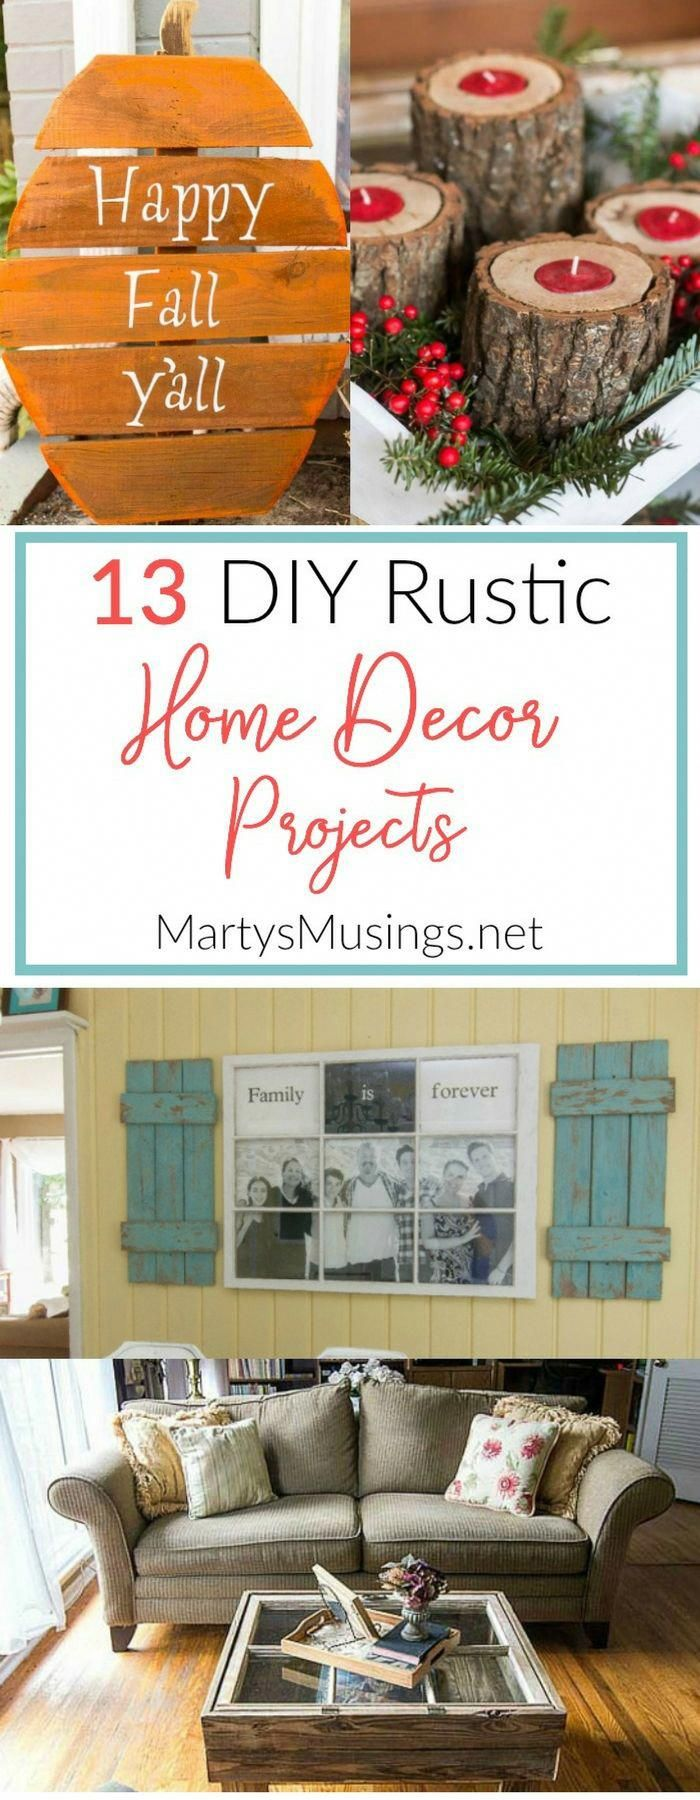 These diy rustic home decor projects will give also best ideas images on pinterest in rh